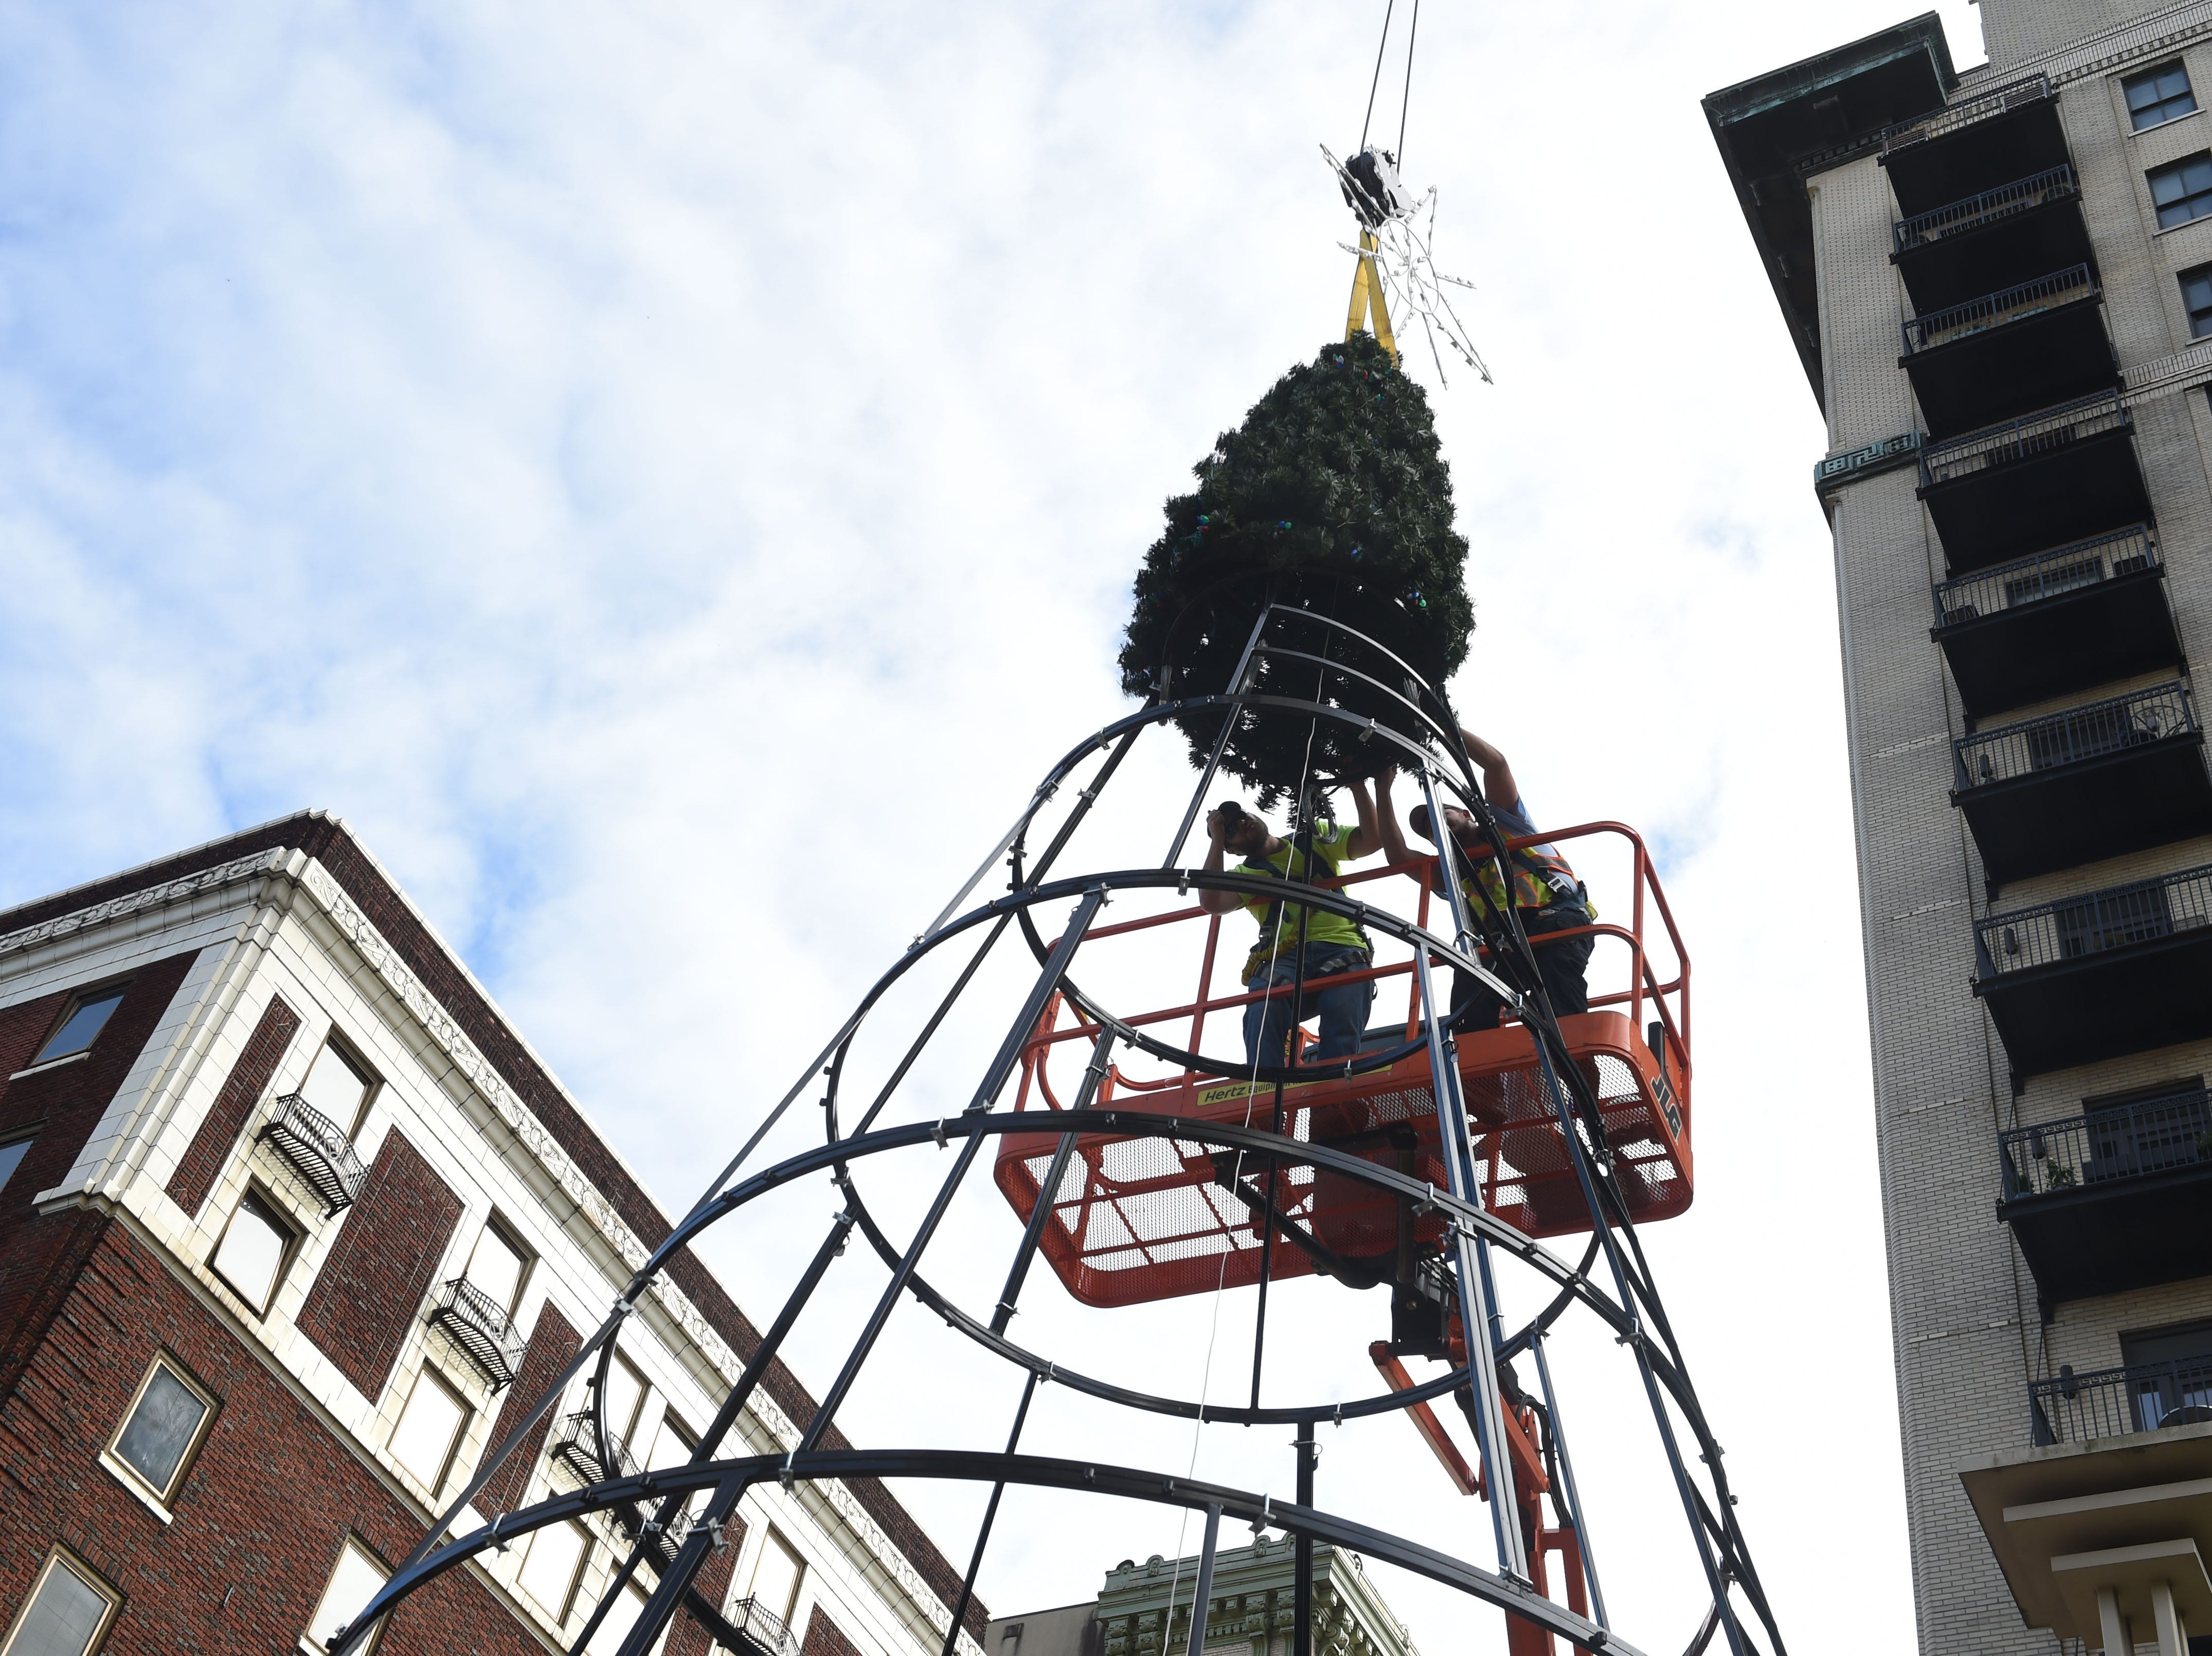 City of Knoxville Public Service workers Cody Foster, left, and Nick Andreasen place the top of a 42 foot decorative holiday tree in Krutch park in downtown Knoxville Tuesday, Nov. 3, 2015. Workers began constructing the new tree on Monday, which will be lit during the Regal Celebration of Lights on November 27th at 6pm.